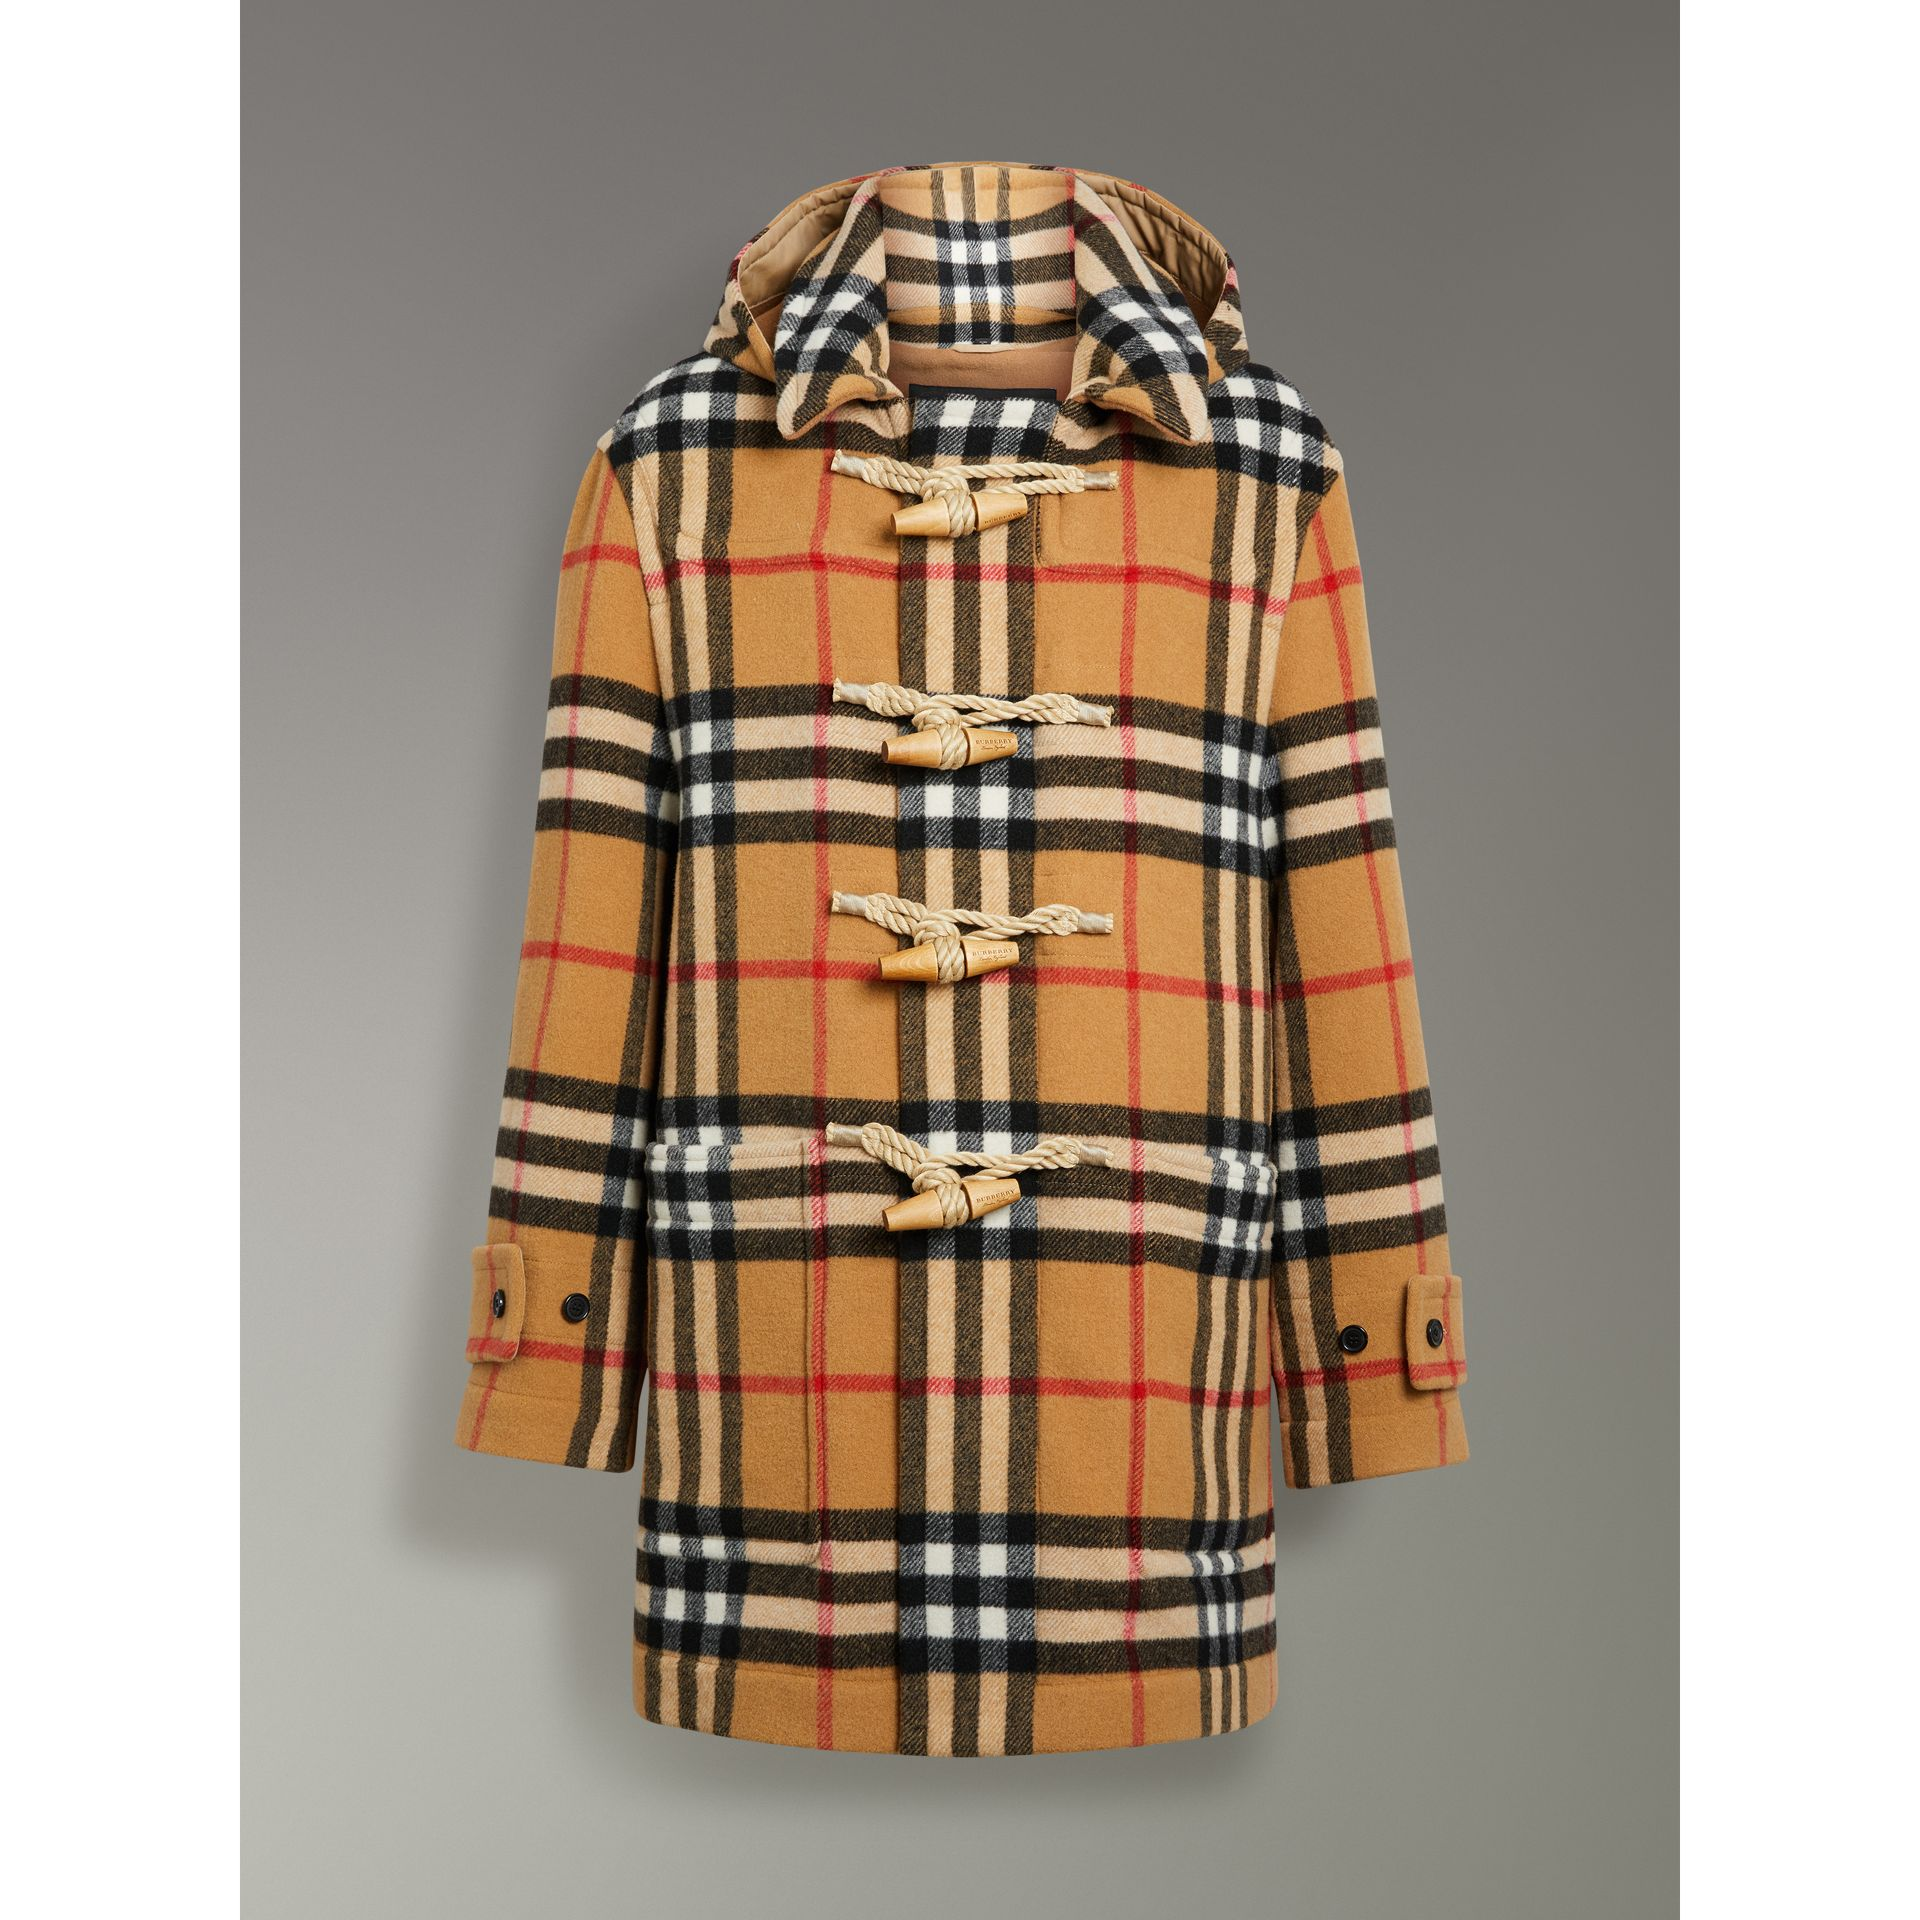 Duffle-coat oversize à motif check Gosha x Burberry (Jaune Antique) | Burberry Canada - photo de la galerie 3